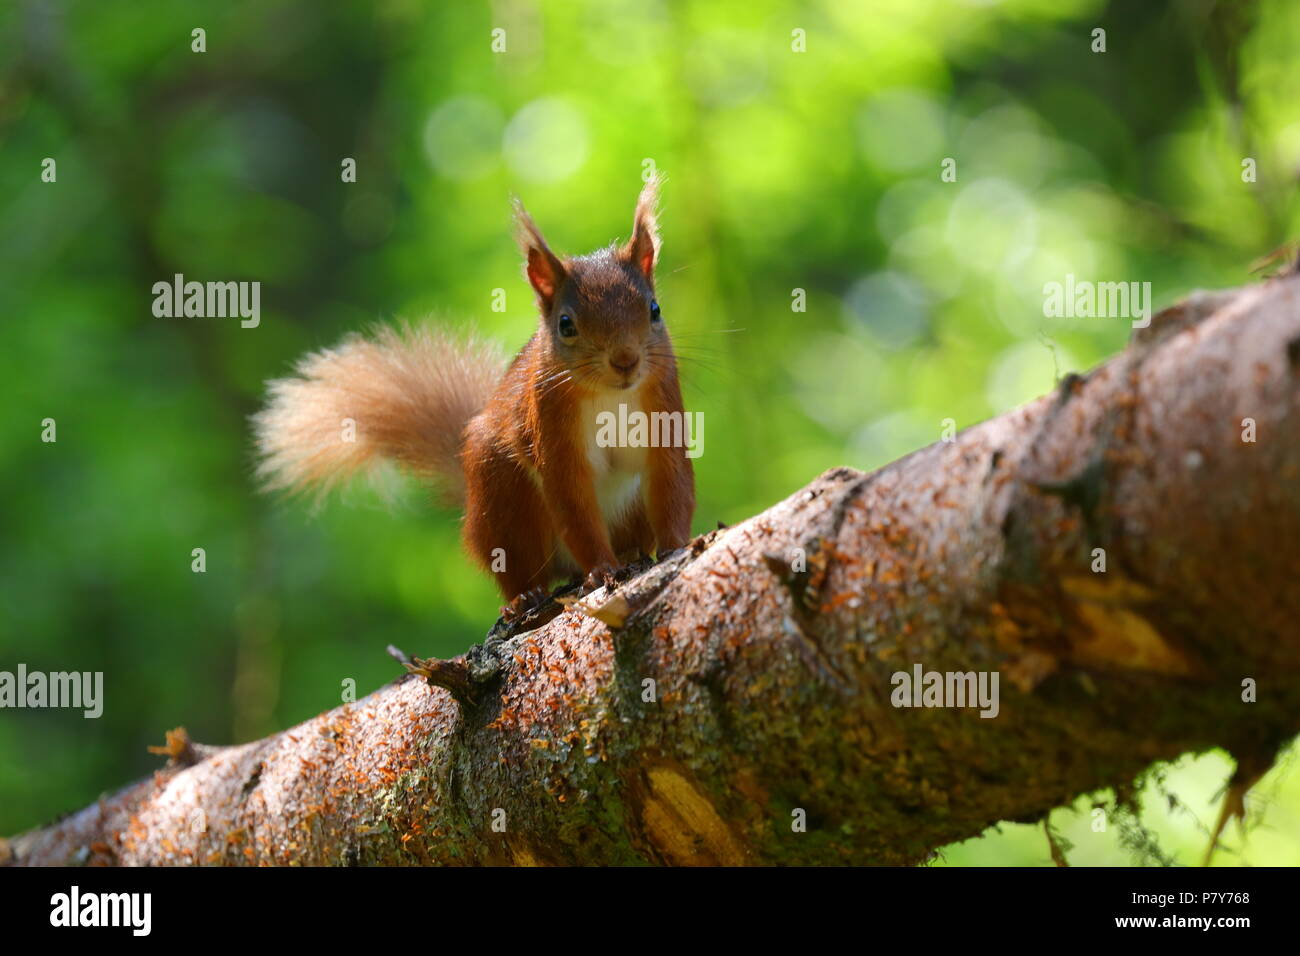 One of Yorkshires Red Squirrel population at the Snaizeholme Red Squirrel Viewpoint near Hawes in North Yorkshire. Stock Photo